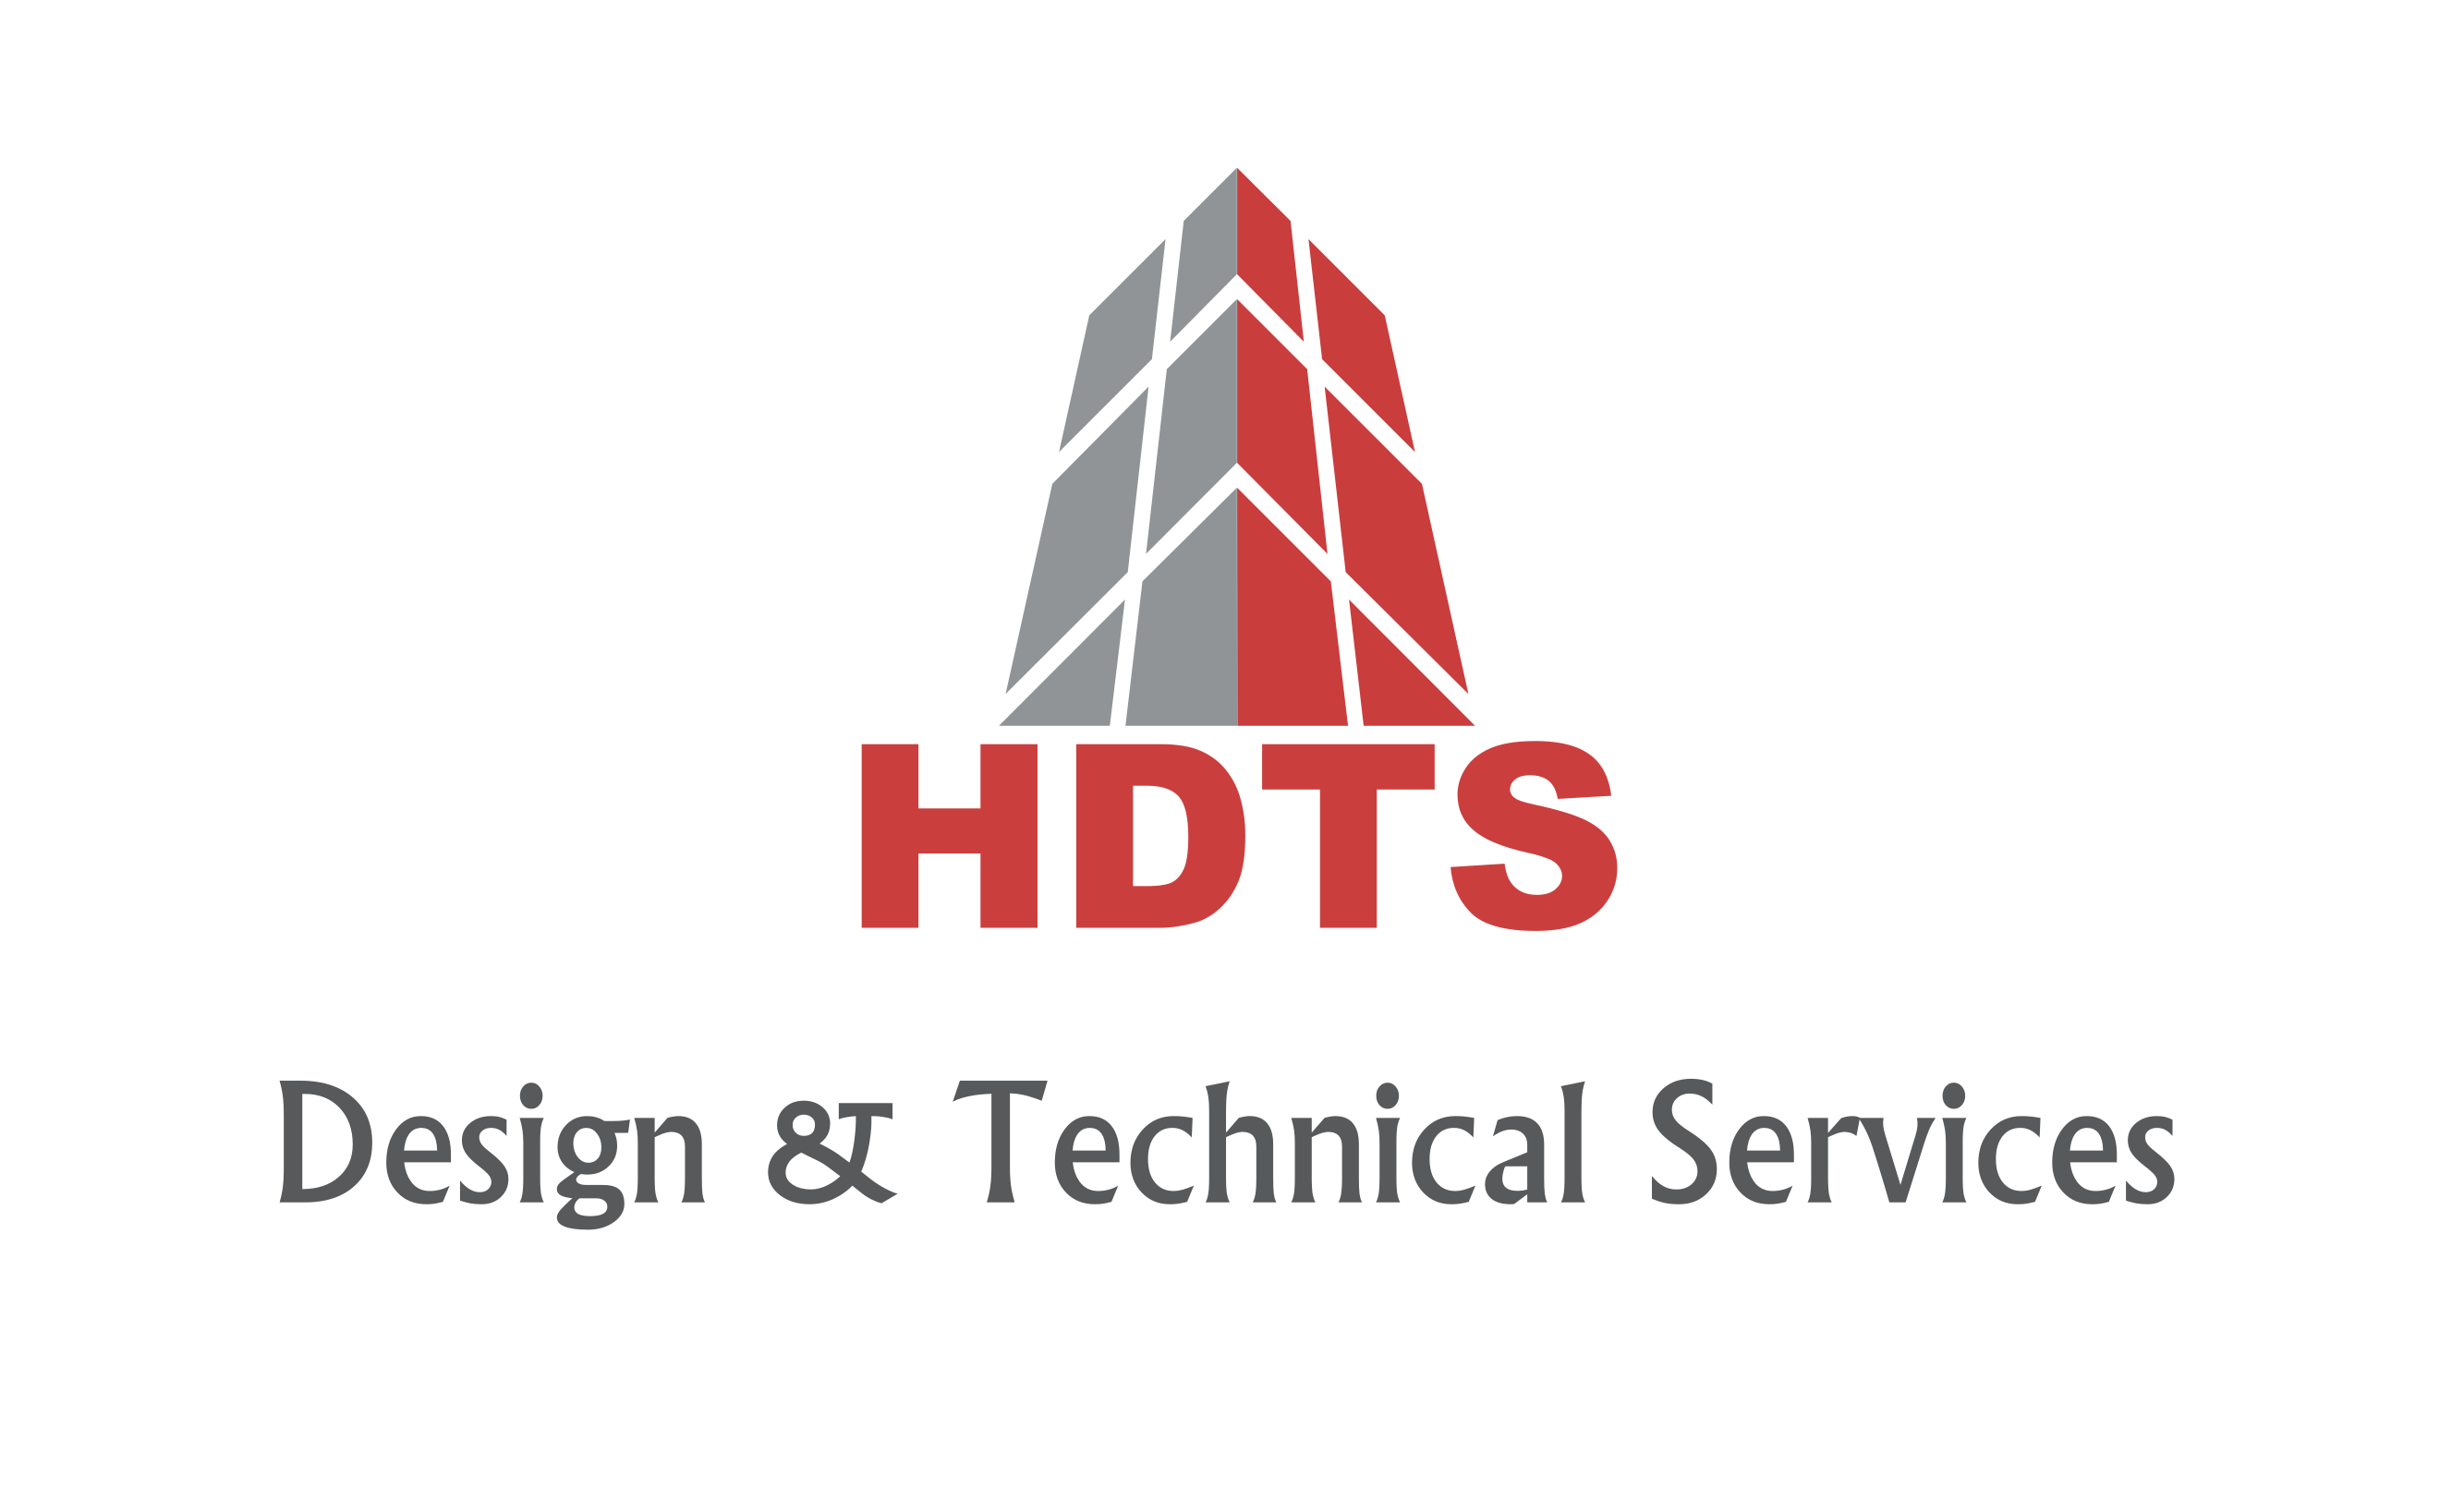 Building Design and Technical Services